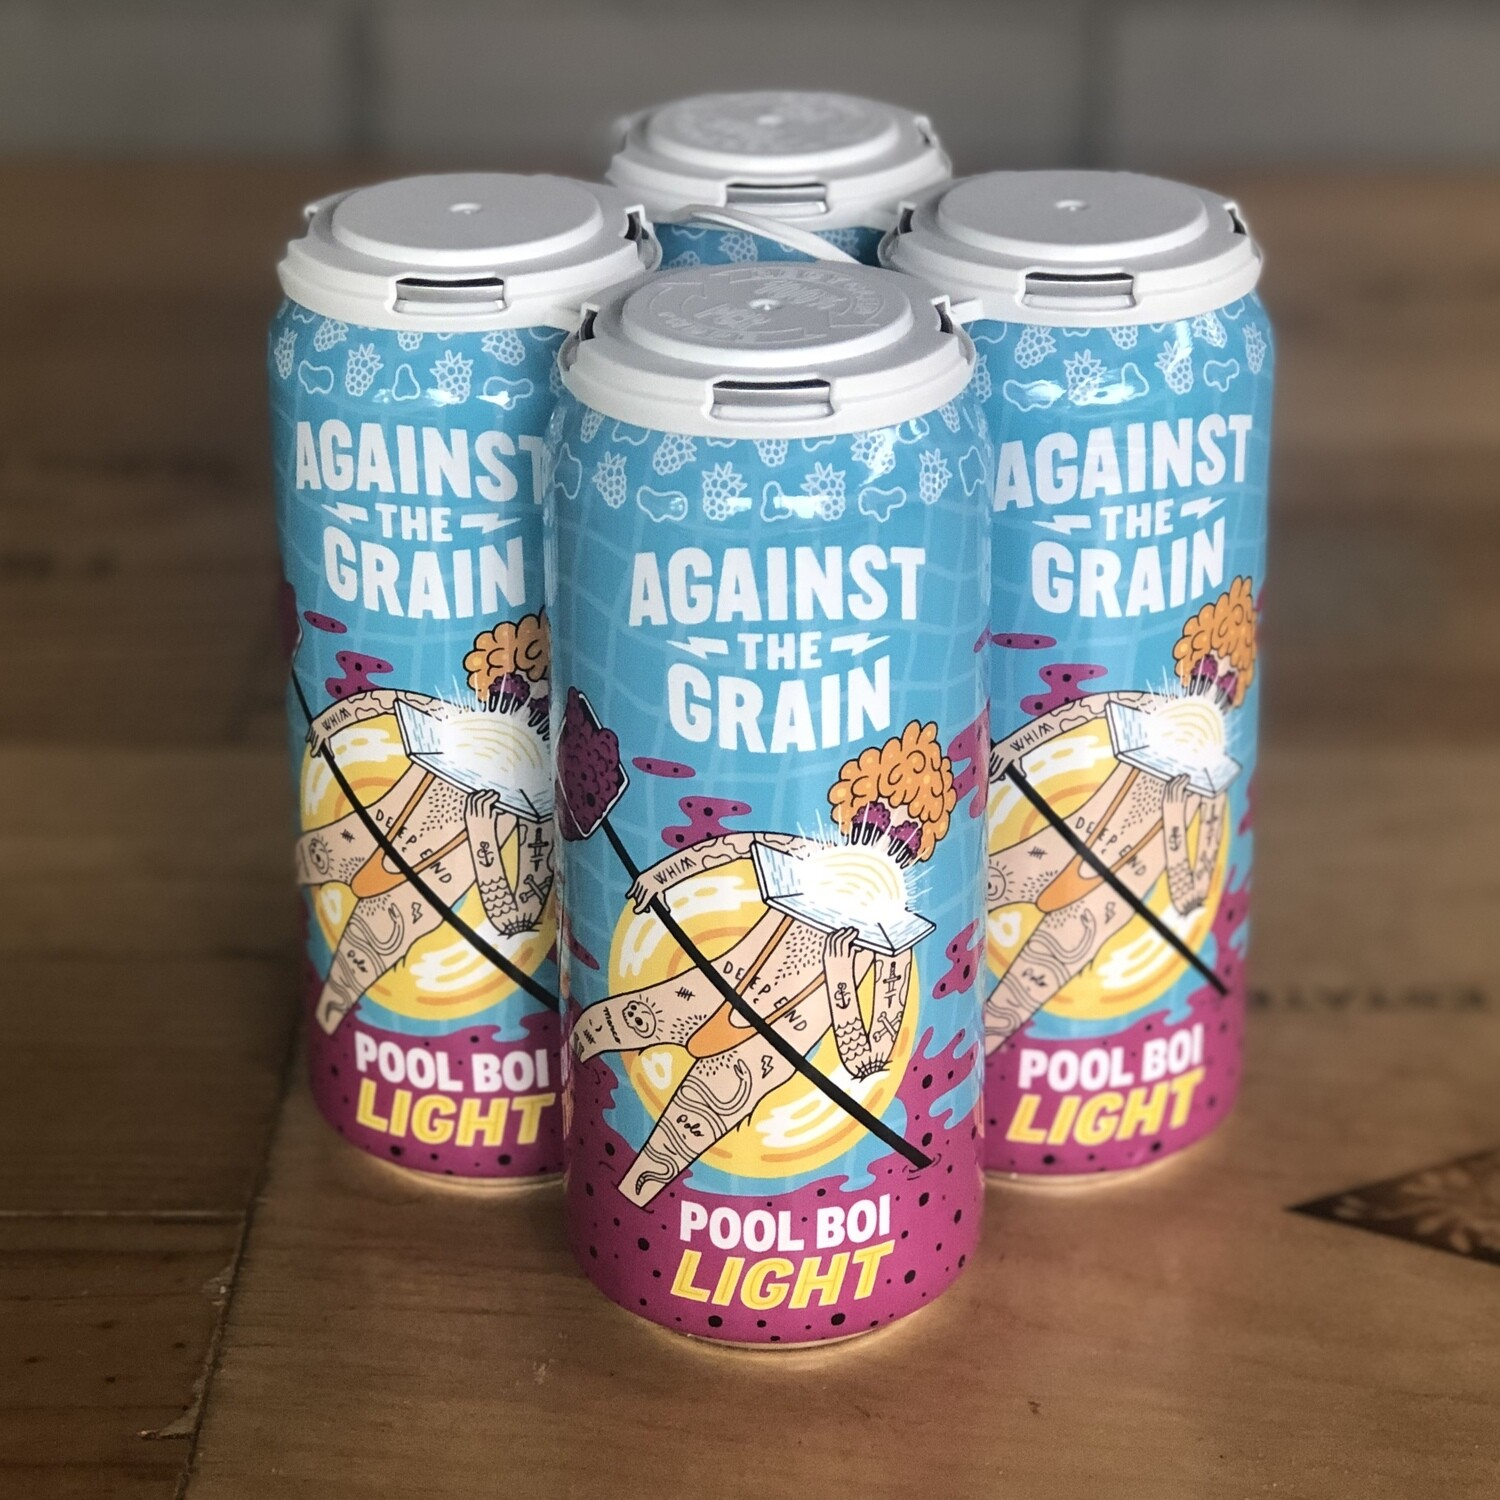 Against The Grain Pool Boi Light (4pk)